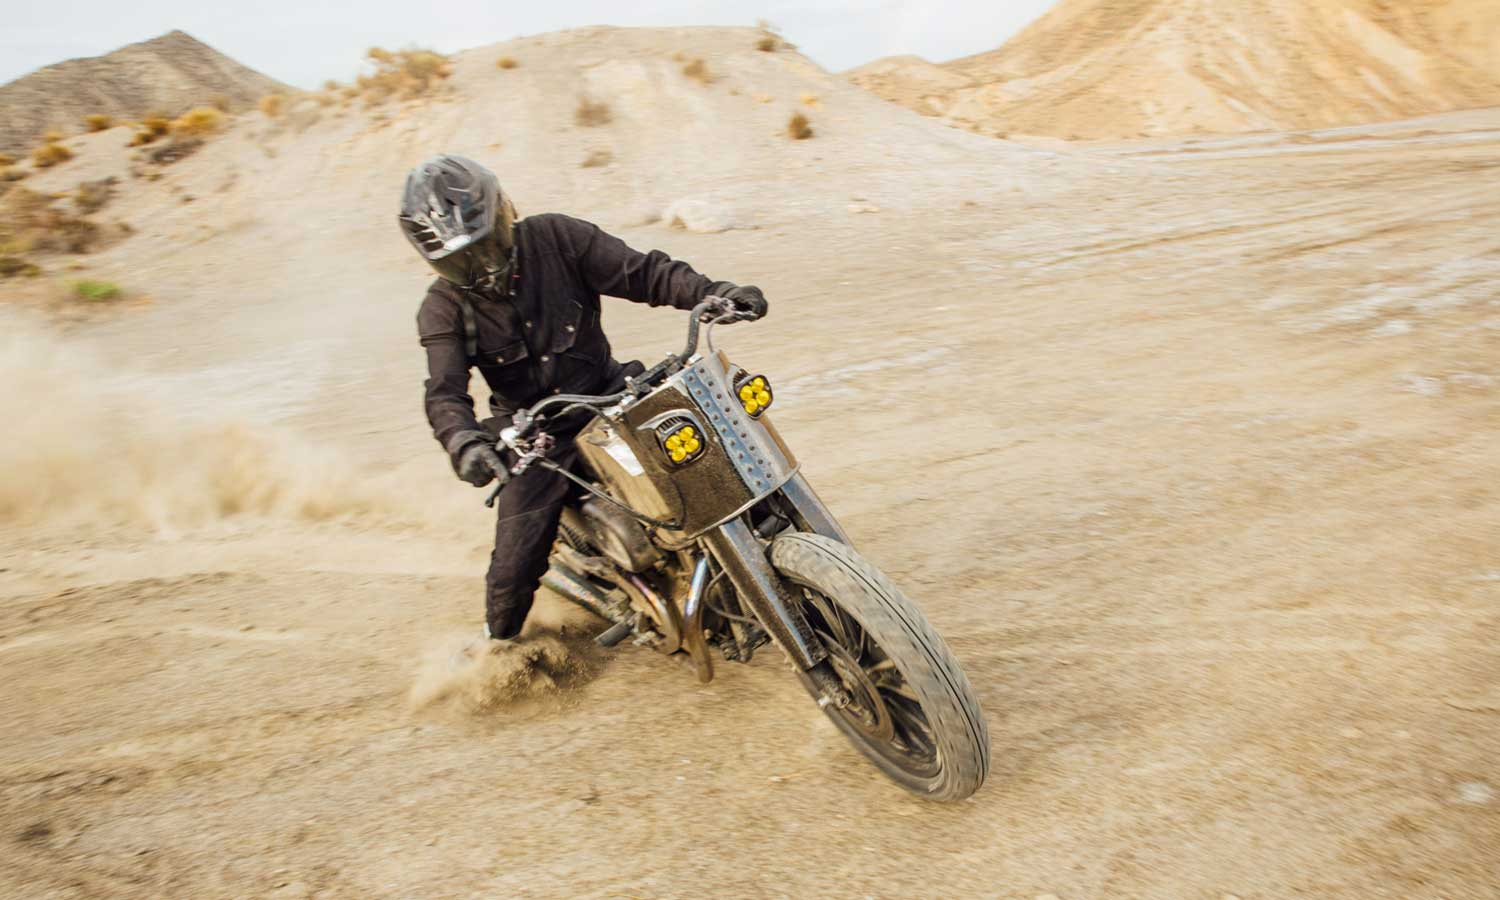 Motorcycle drifting in a desert